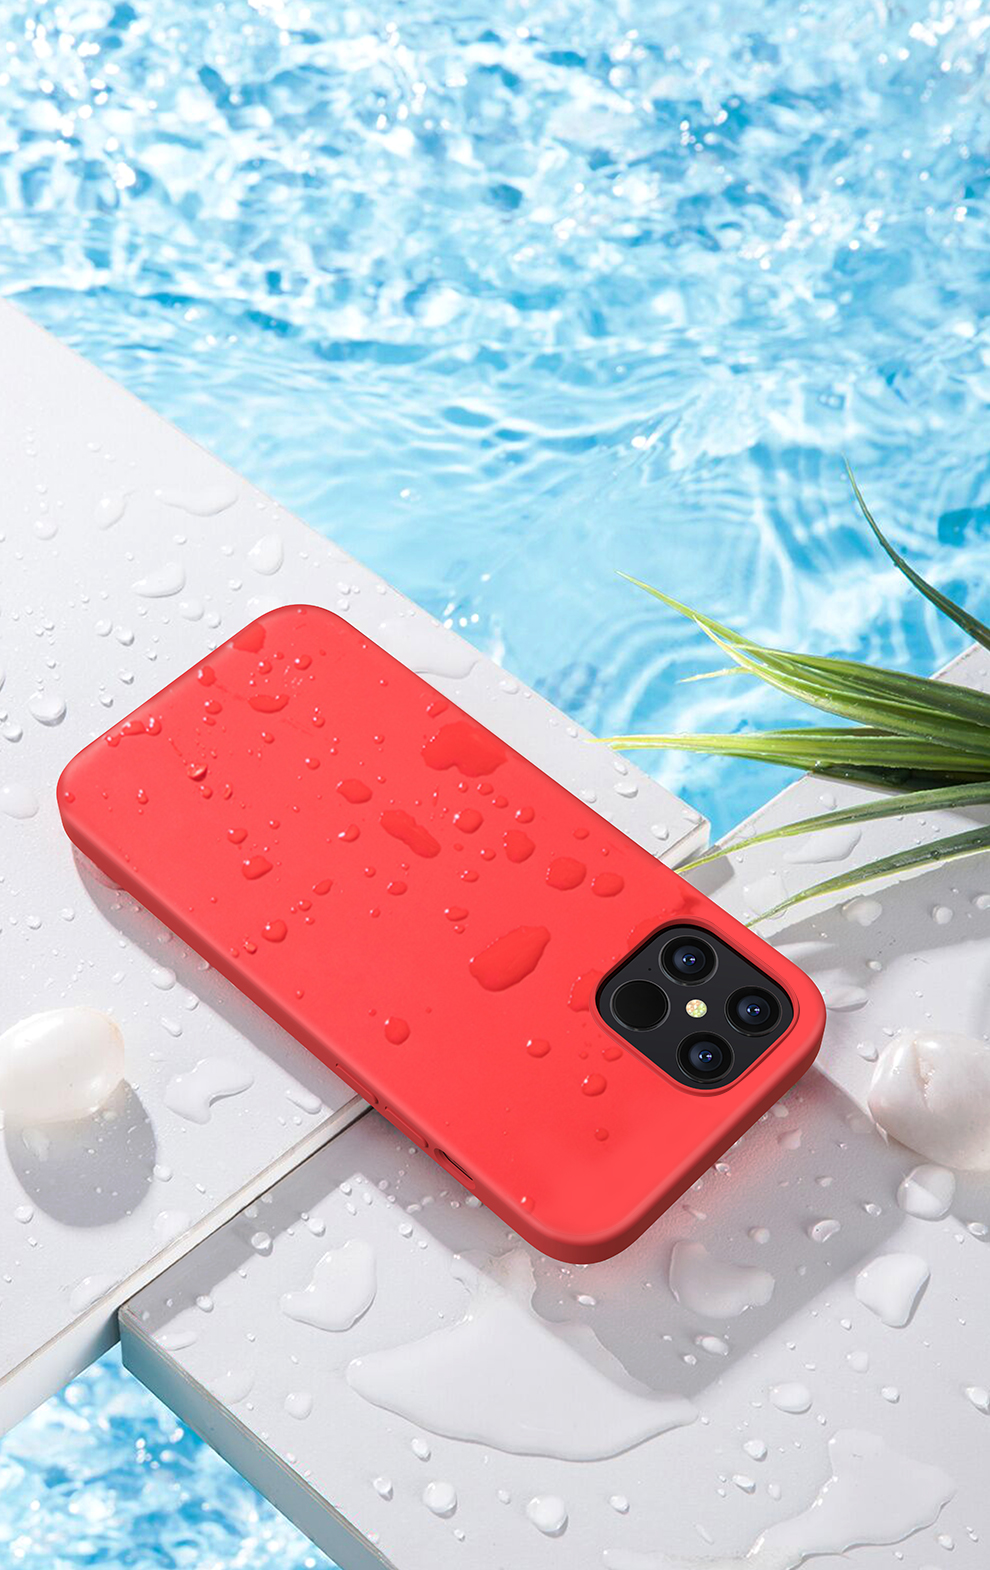 Devia Nature Series Silicone Case For iPhone 12, IPhone 12 Max, iPhone 12 Pro and iPhone Pro 12 Max